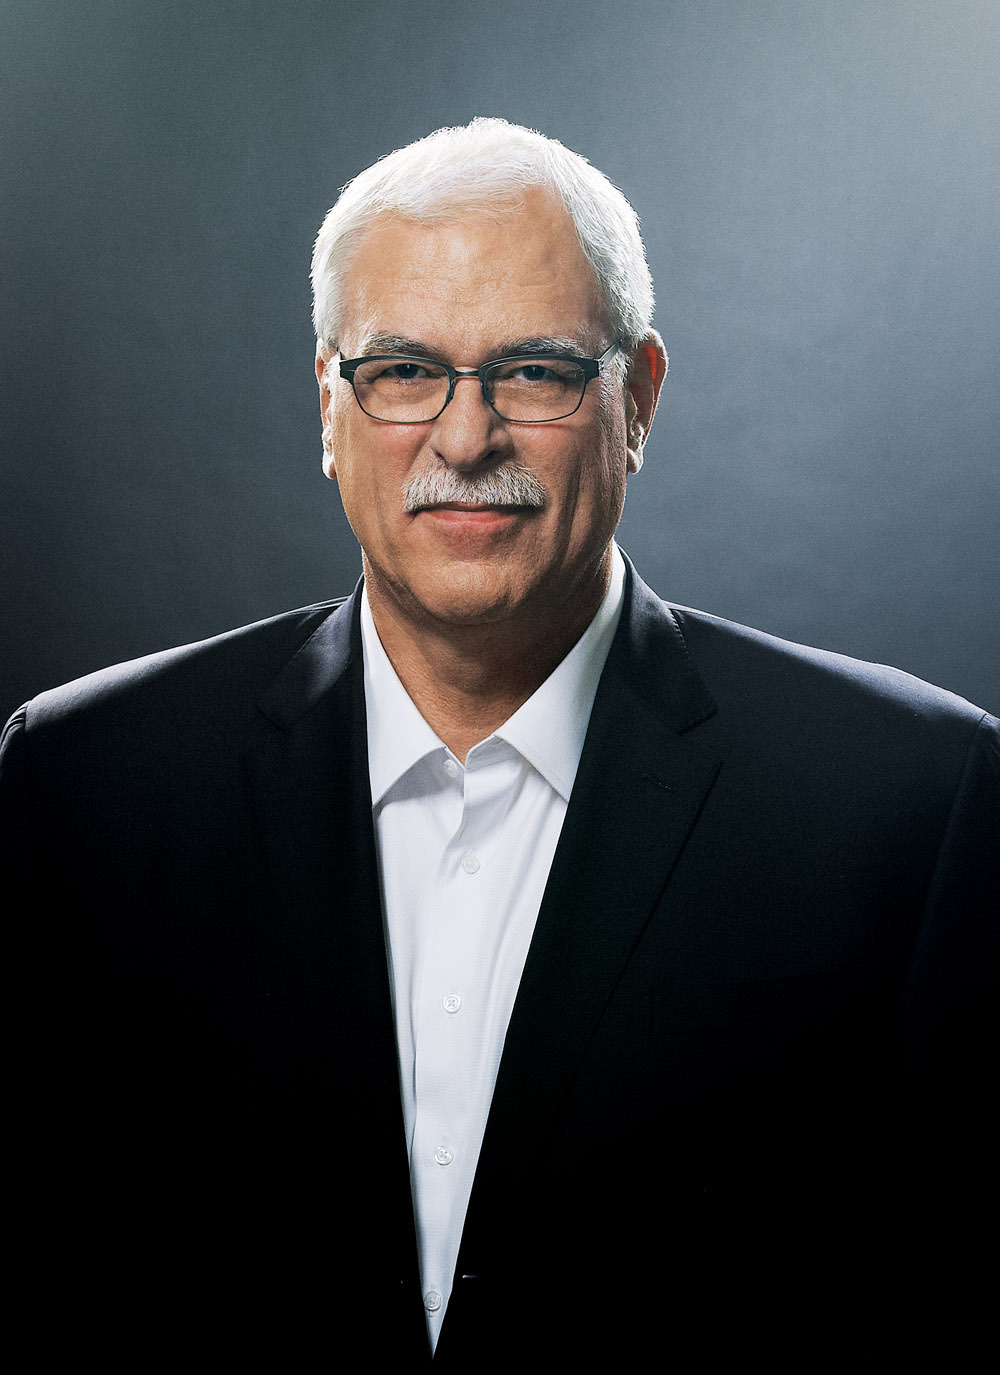 Phil Jackson was the head coach of the Chicago Bulls from 1989-1998, and of the L.A. Lakers for more than 10 years.